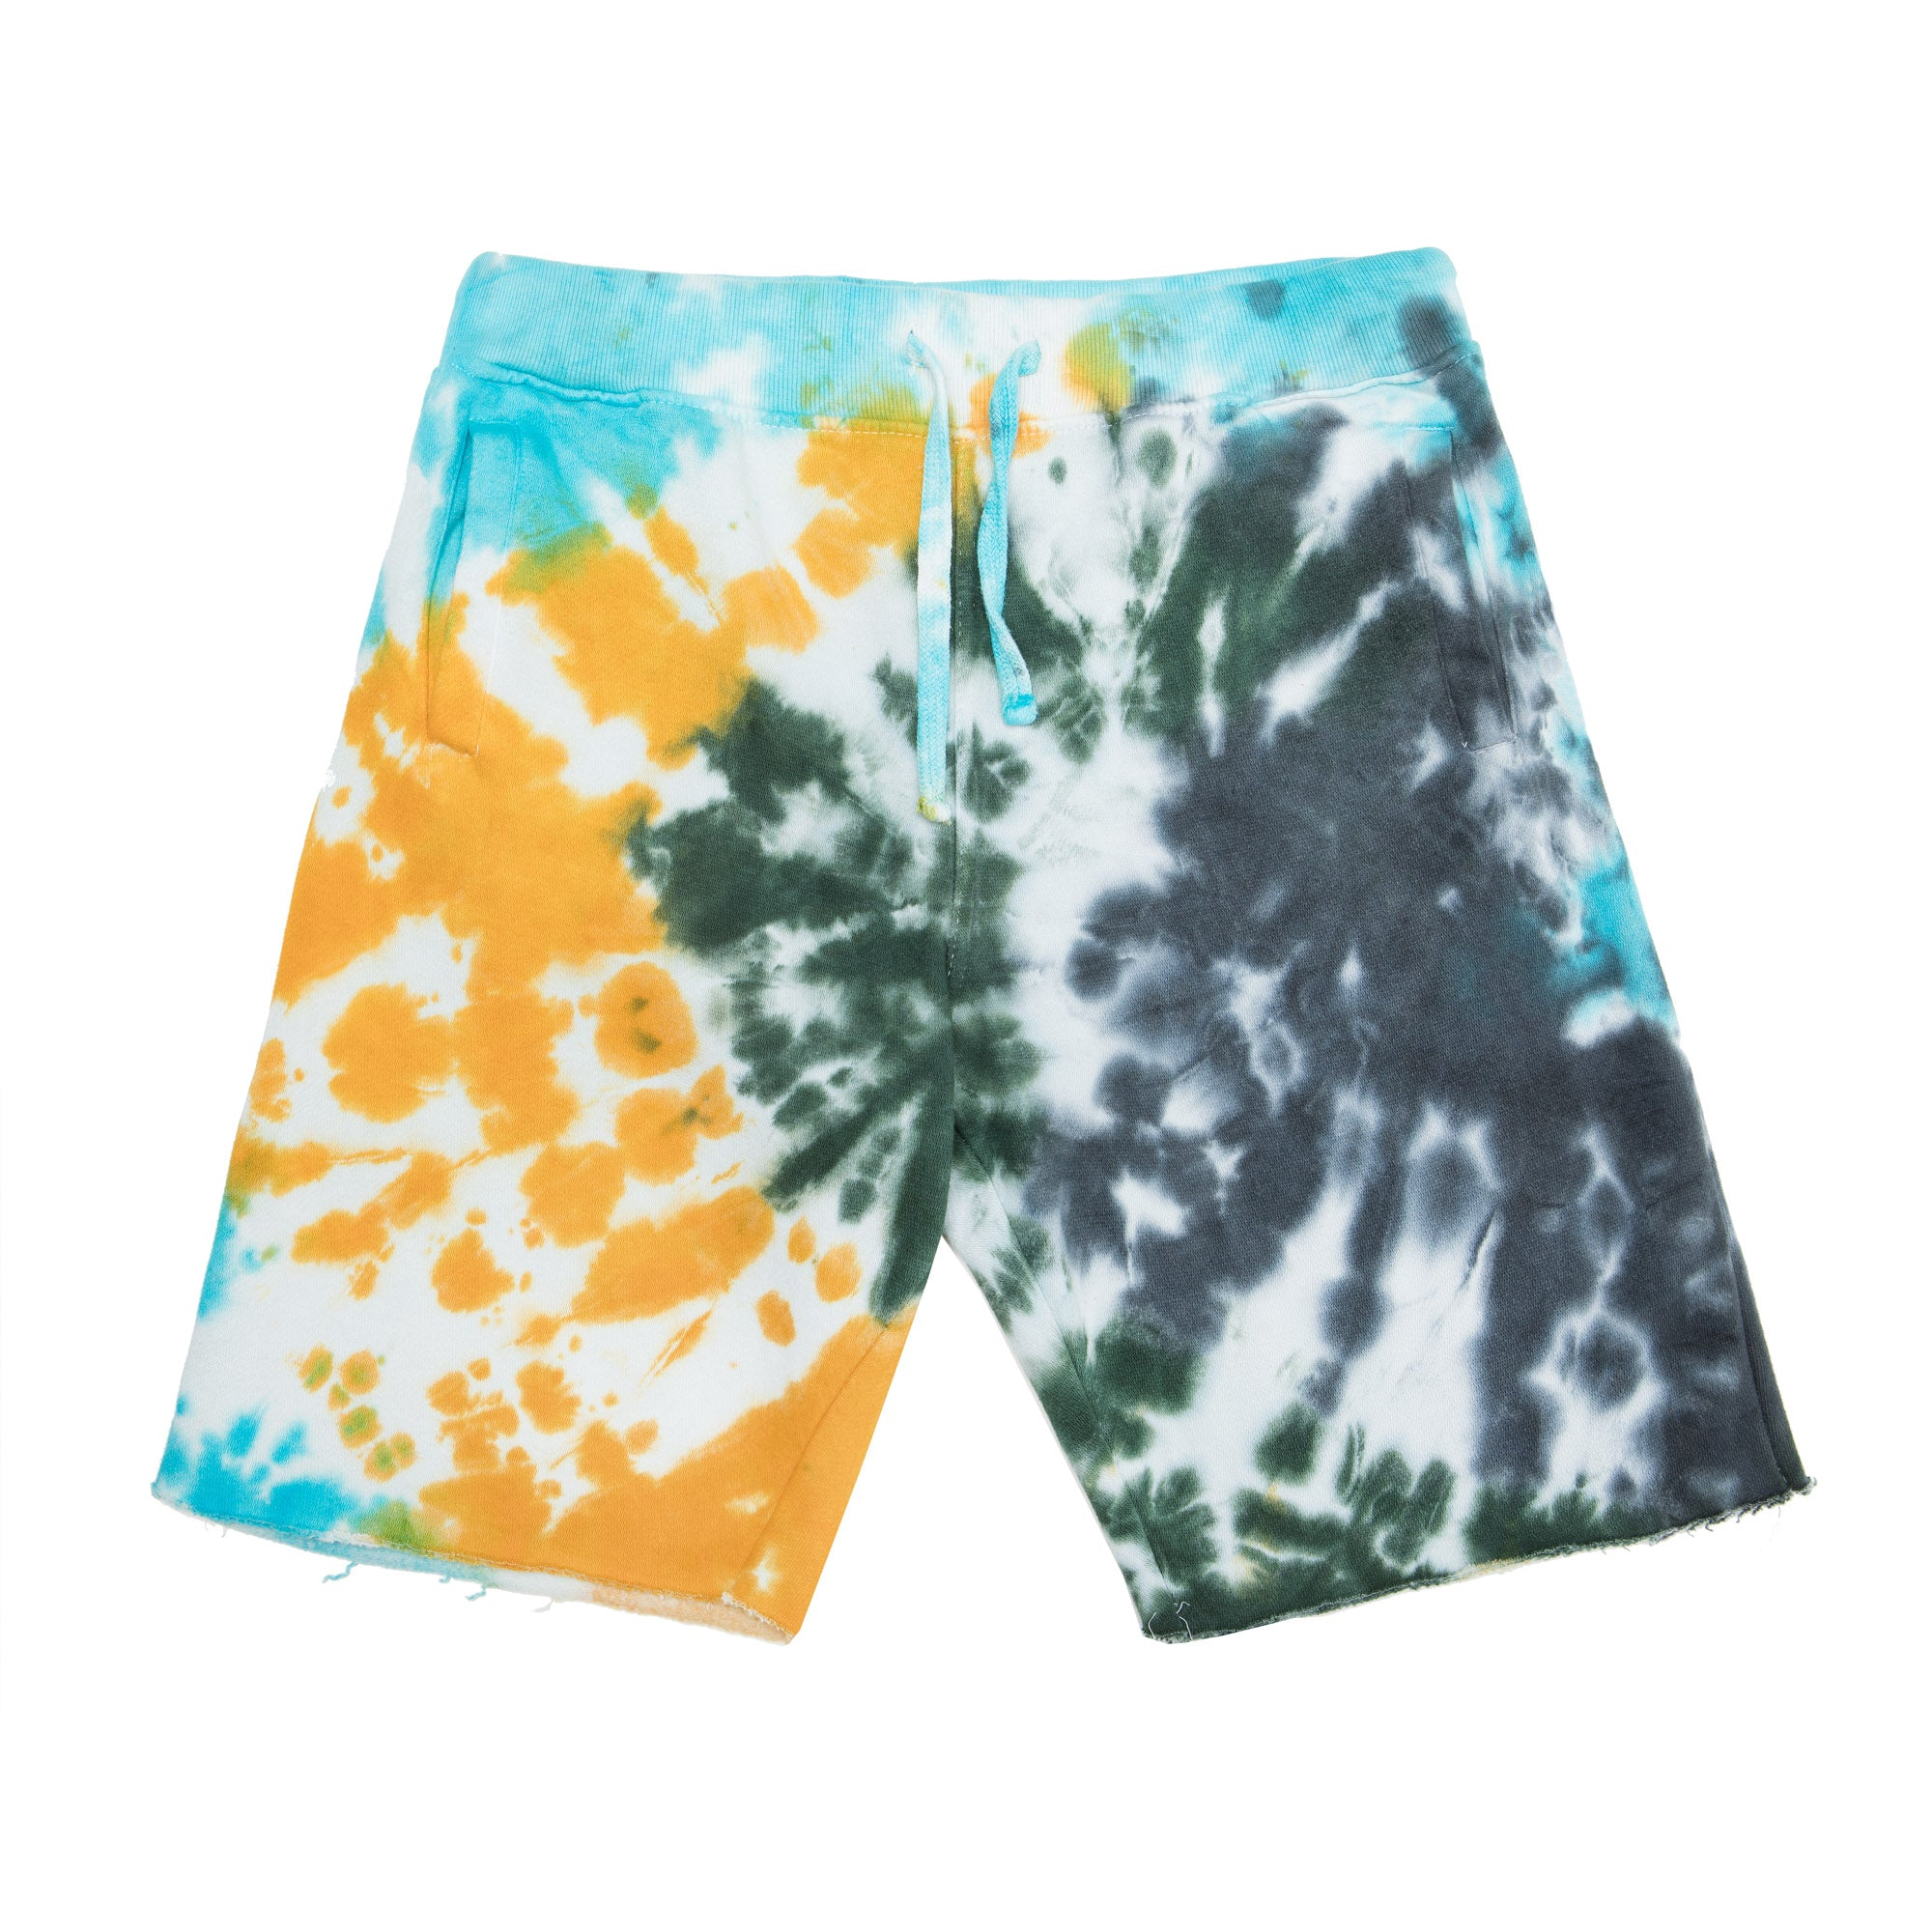 The Limeade Short